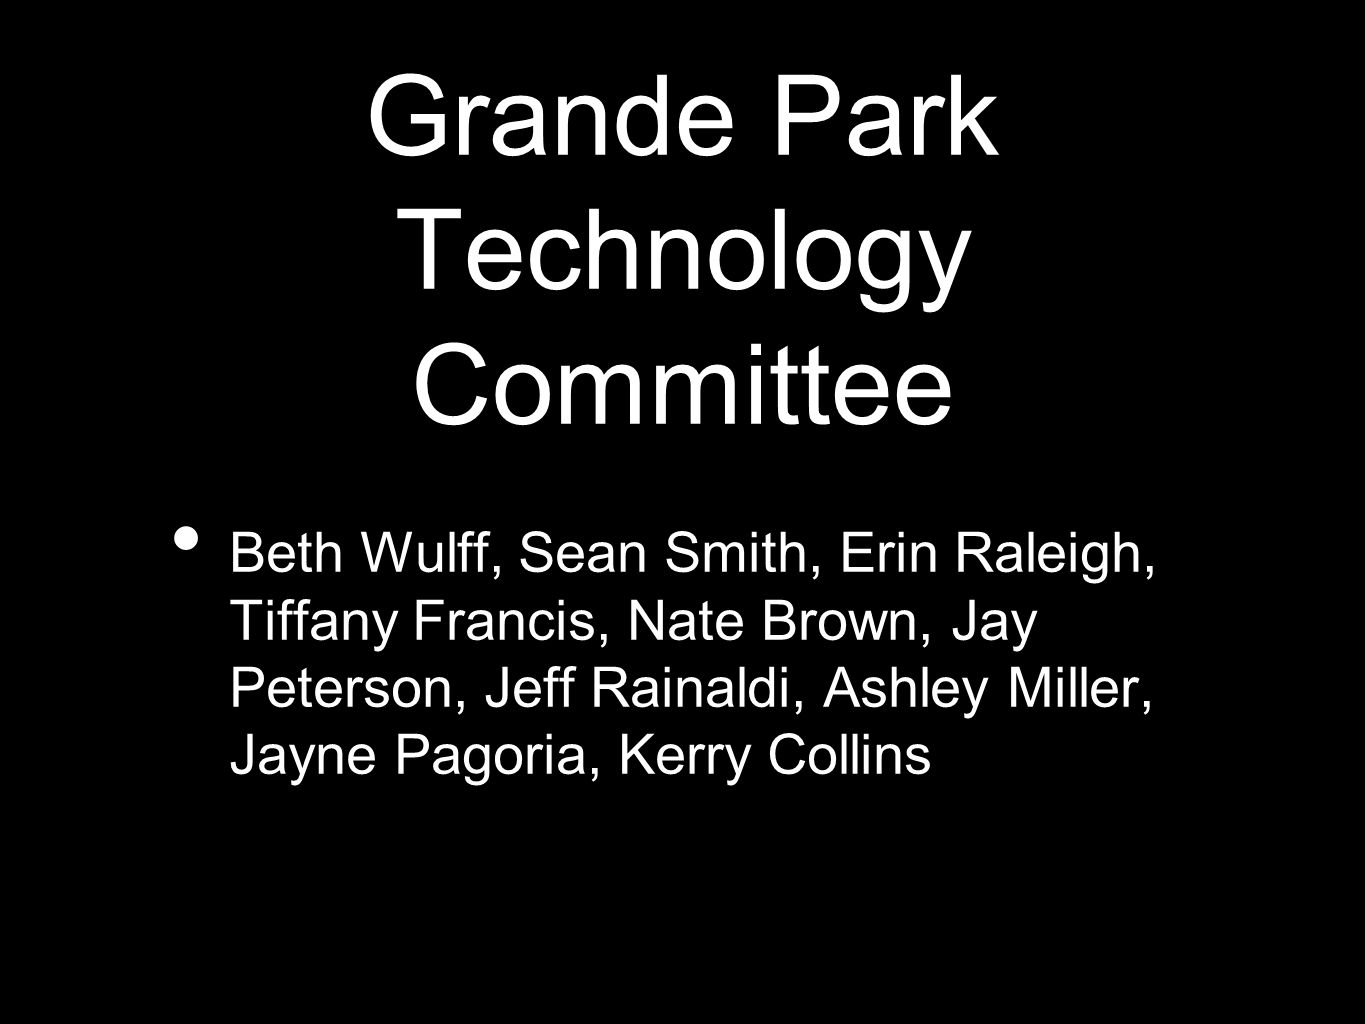 Grande Park Technology Committee Beth Wulff, Sean Smith, Erin Raleigh, Tiffany Francis, Nate Brown, Jay Peterson, Jeff Rainaldi, Ashley Miller, Jayne Pagoria, Kerry Collins